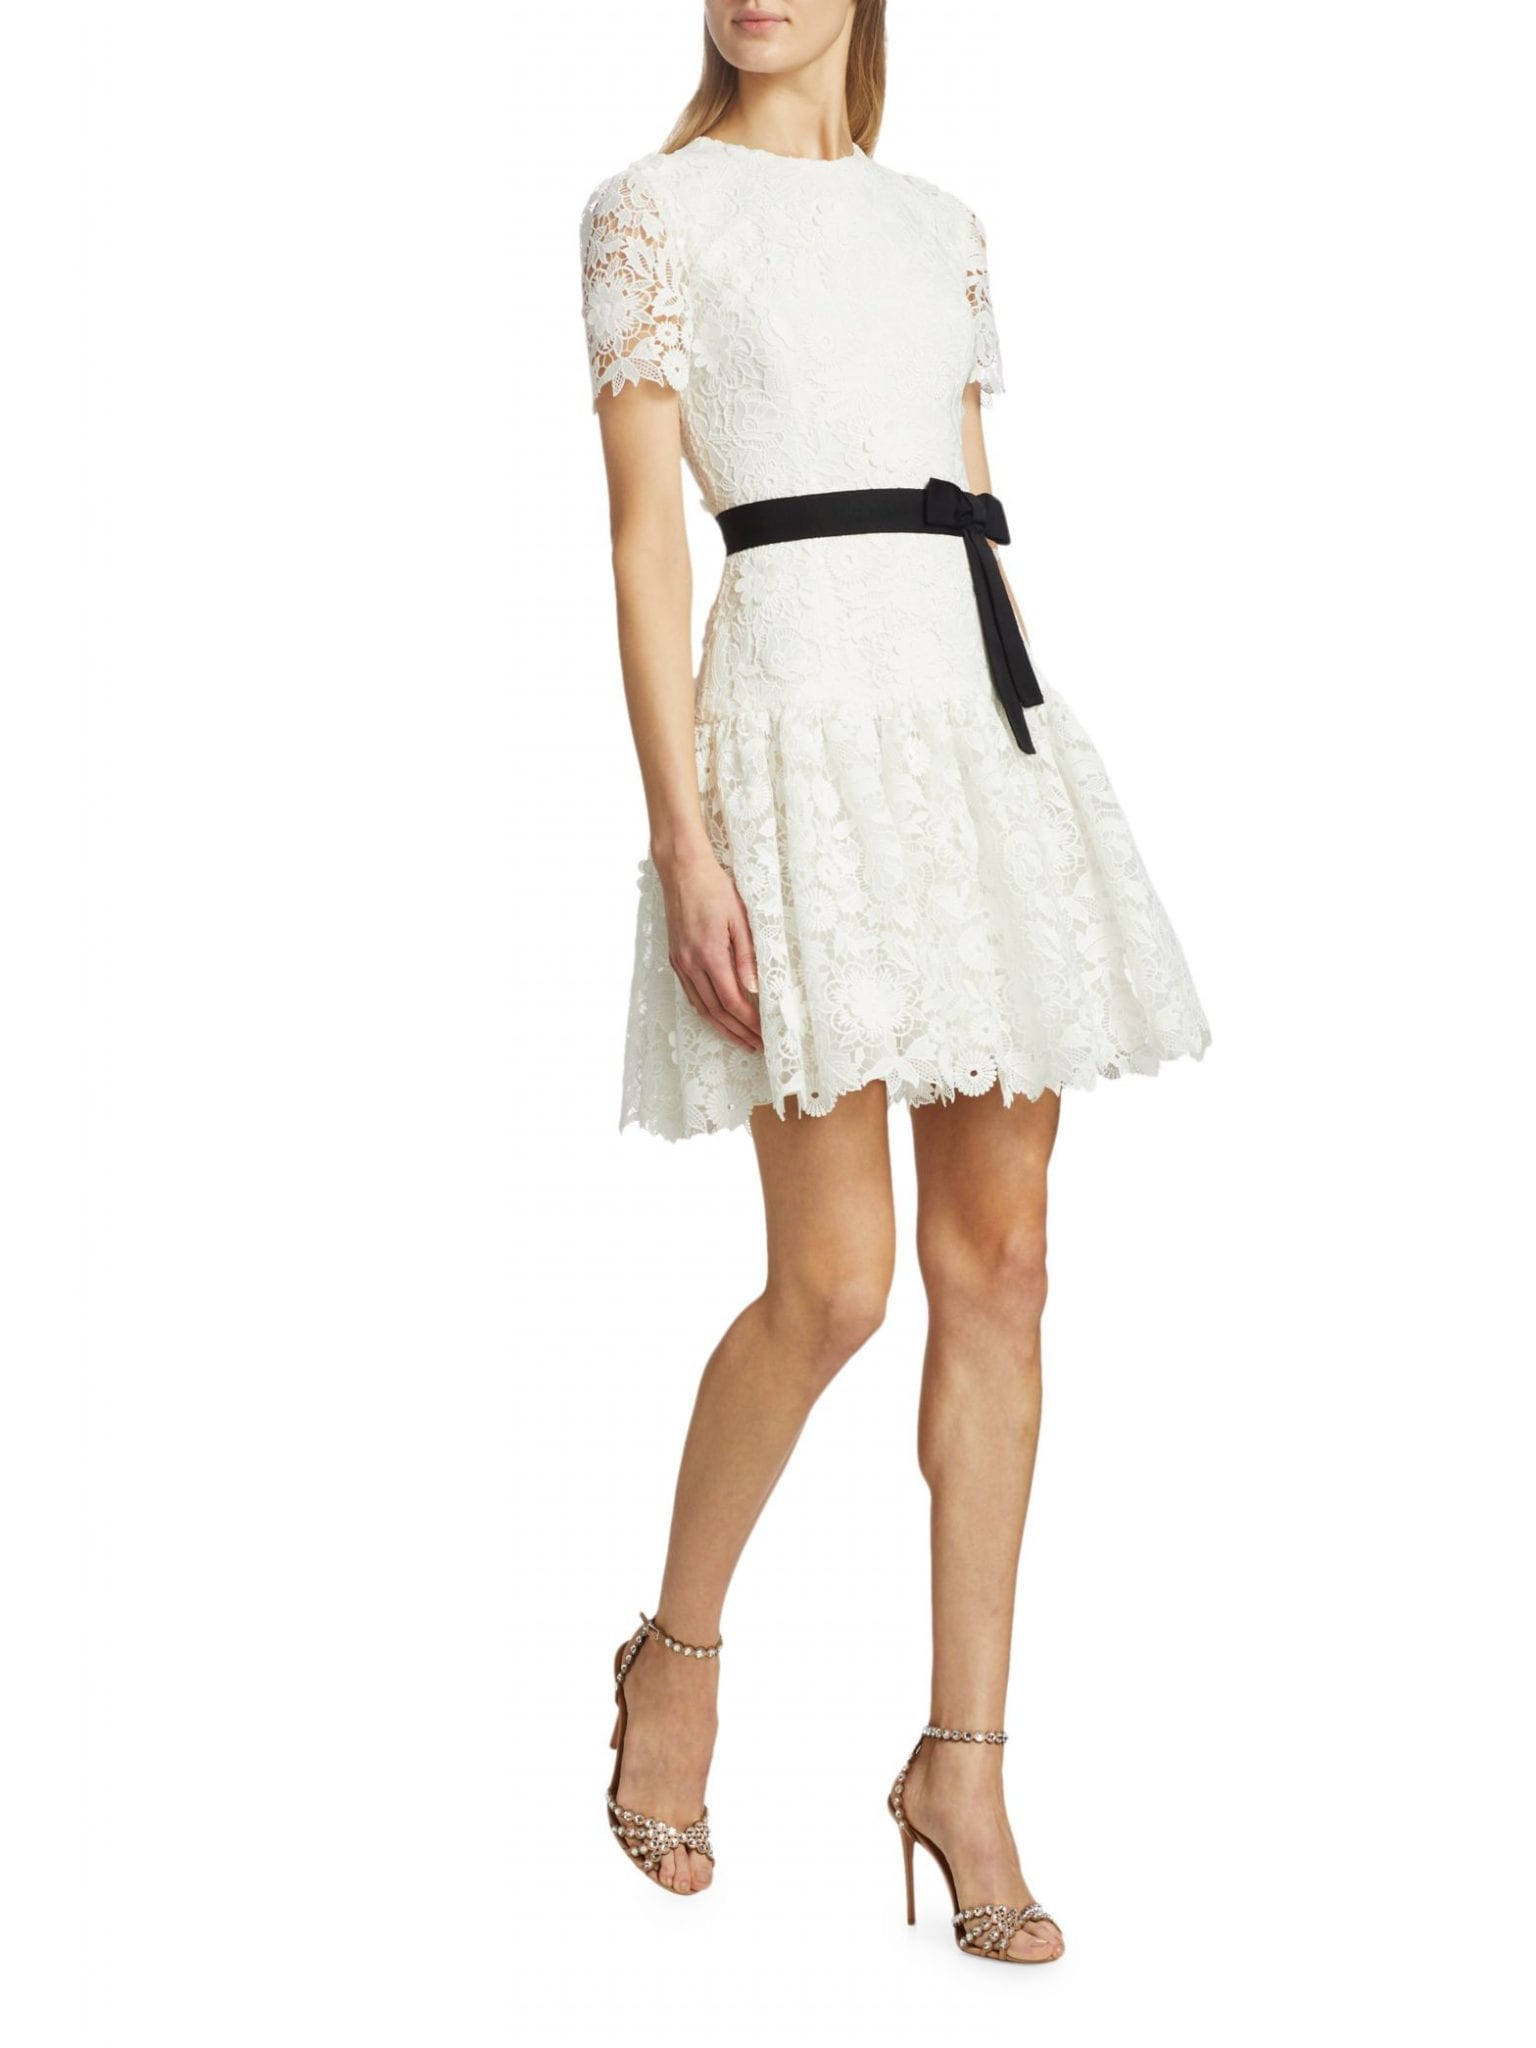 CAROLINA HERRERA Floral Lace Ruffle-Hem Mini Dress